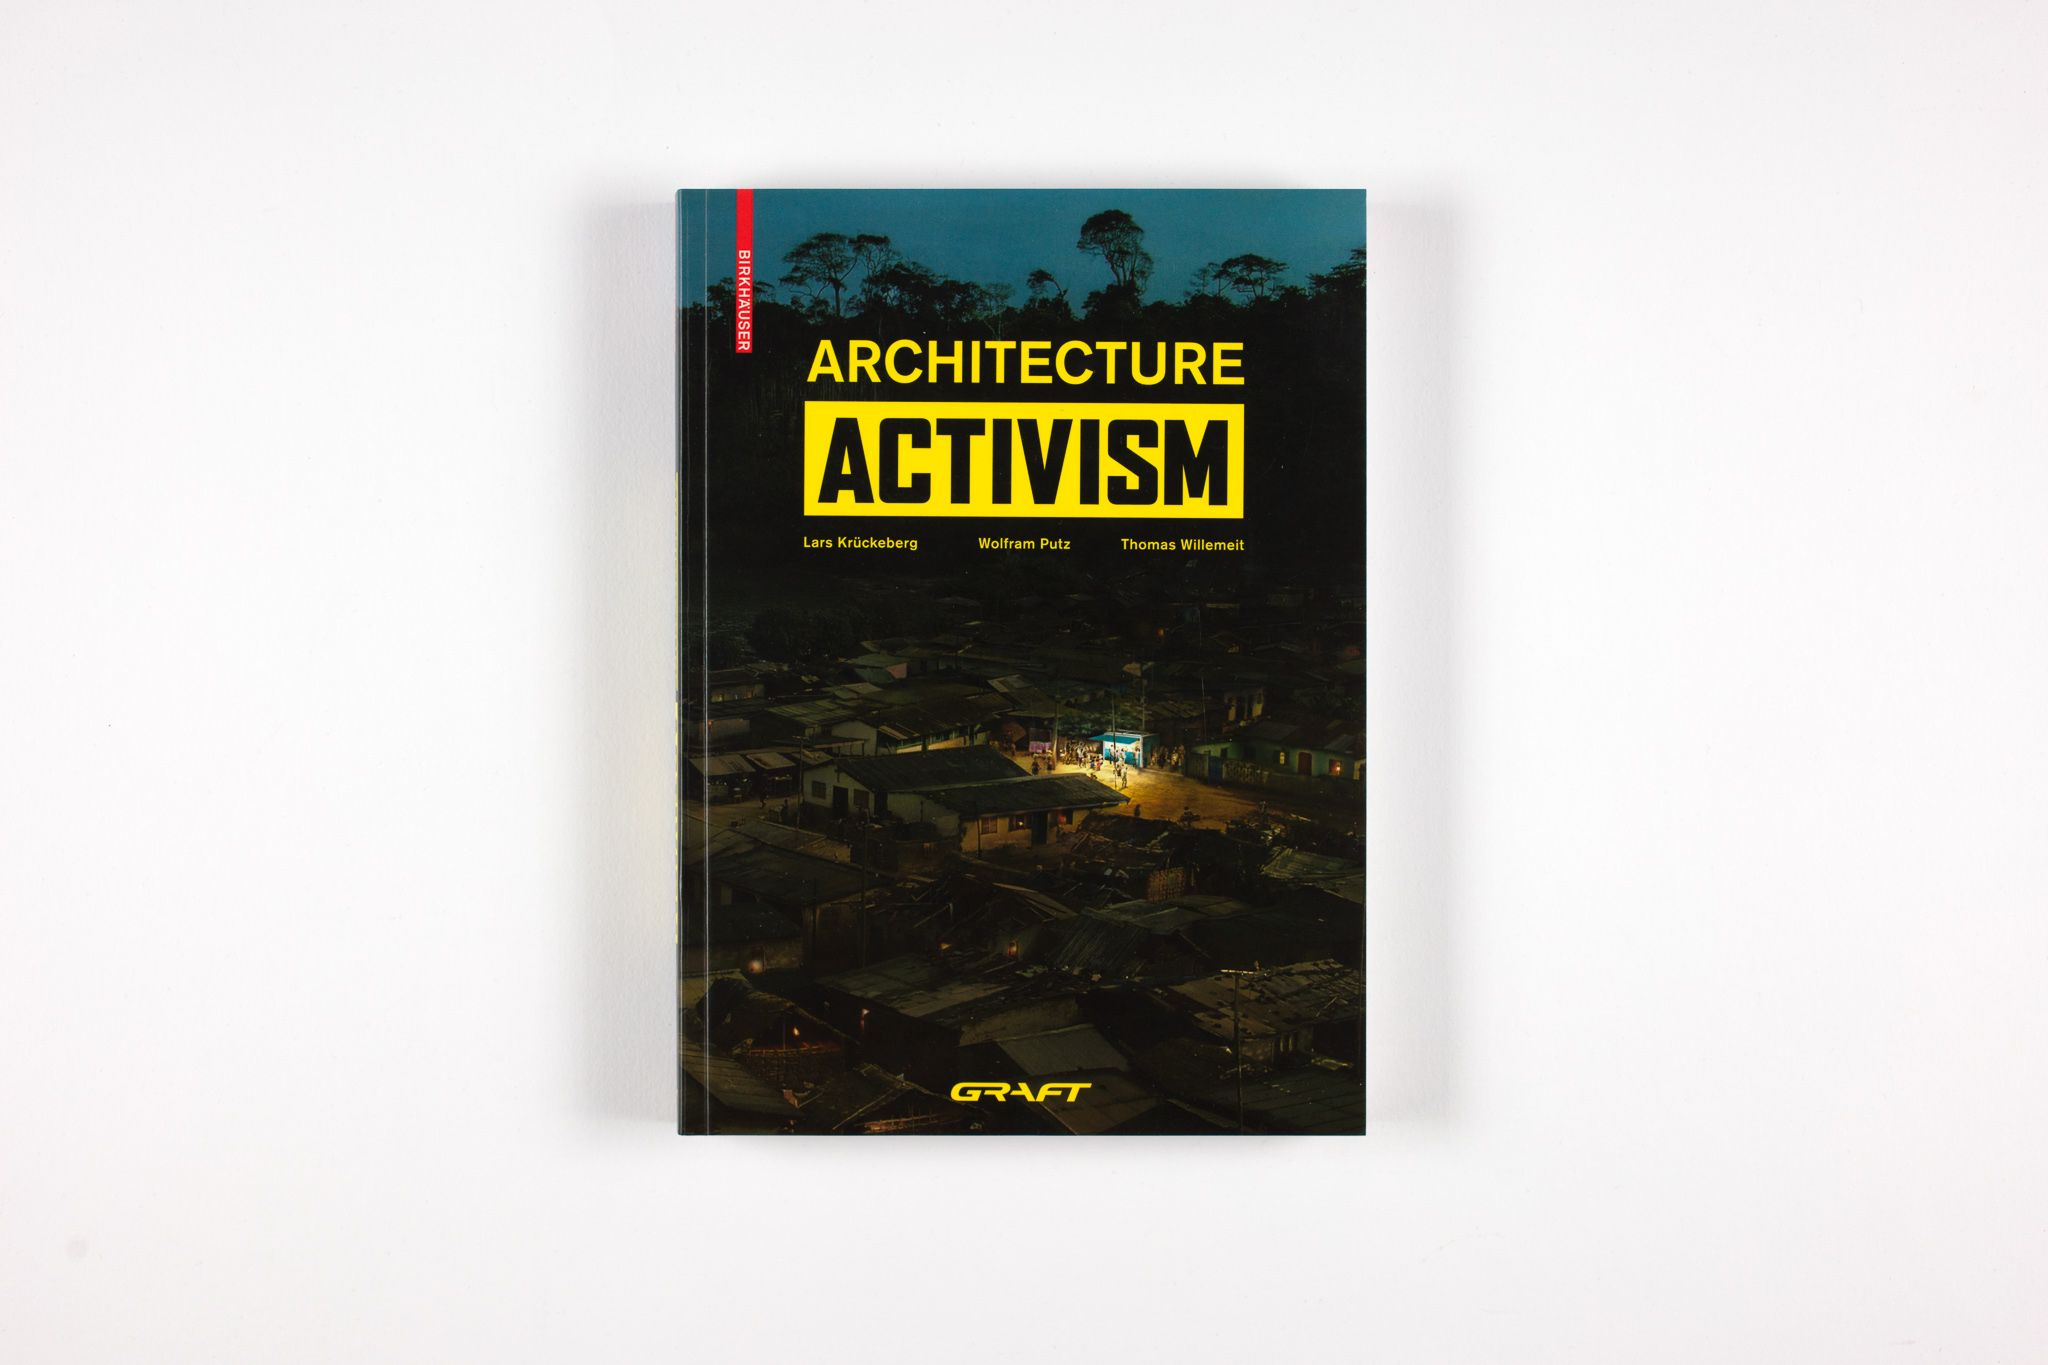 Architecture Activism documents ten projects that specifically address social problems and societal needs around the globe in which architecture is used as a means of actively fostering the development of livable places and environments. Among them is SOLARKIOSK, a self-initiated project that empowers people in off-grid communities by bringing clean energy and light into darkness.